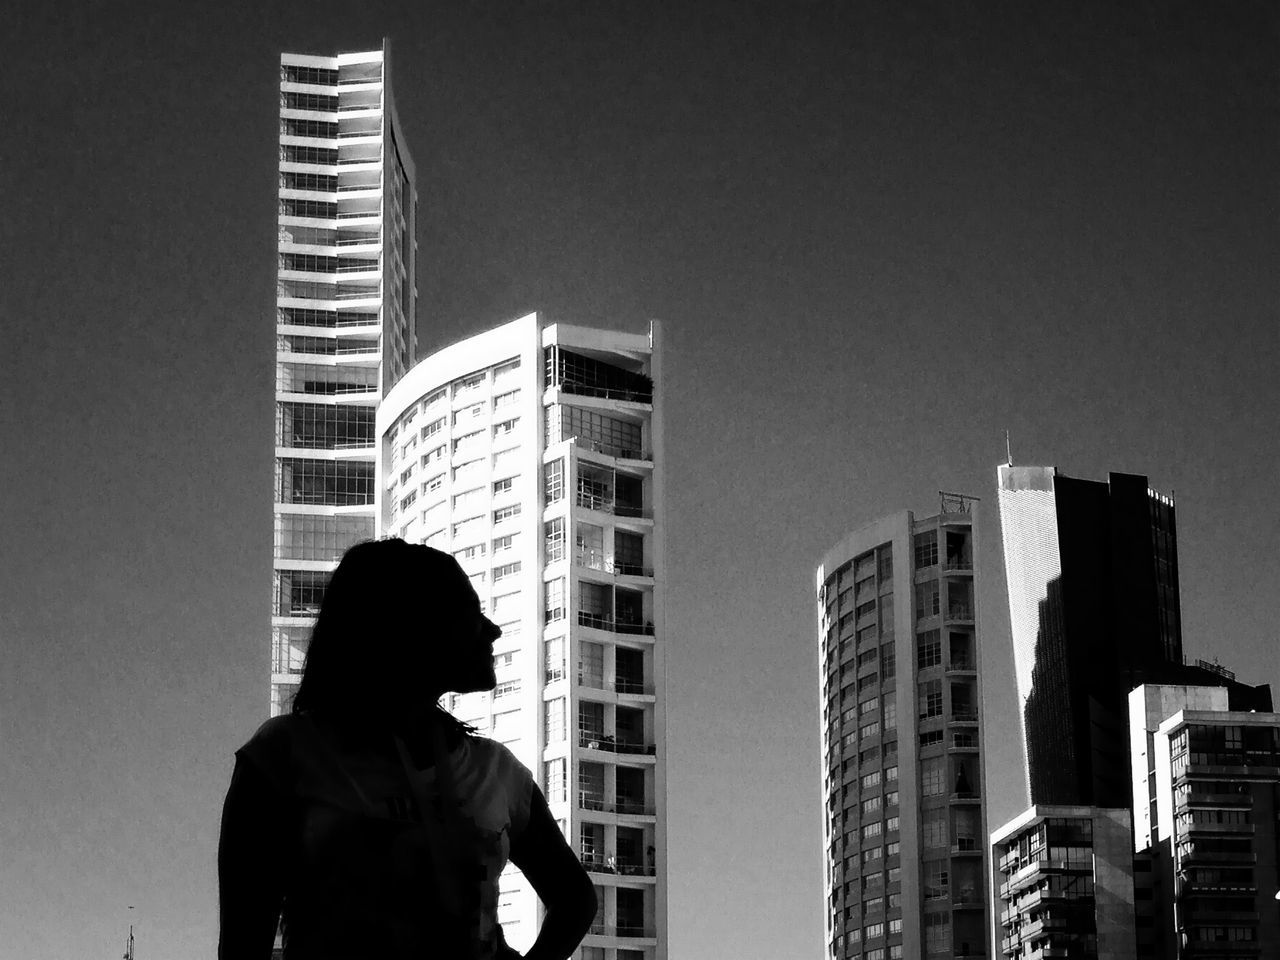 Woman standing against tall buildings against clear sky in city